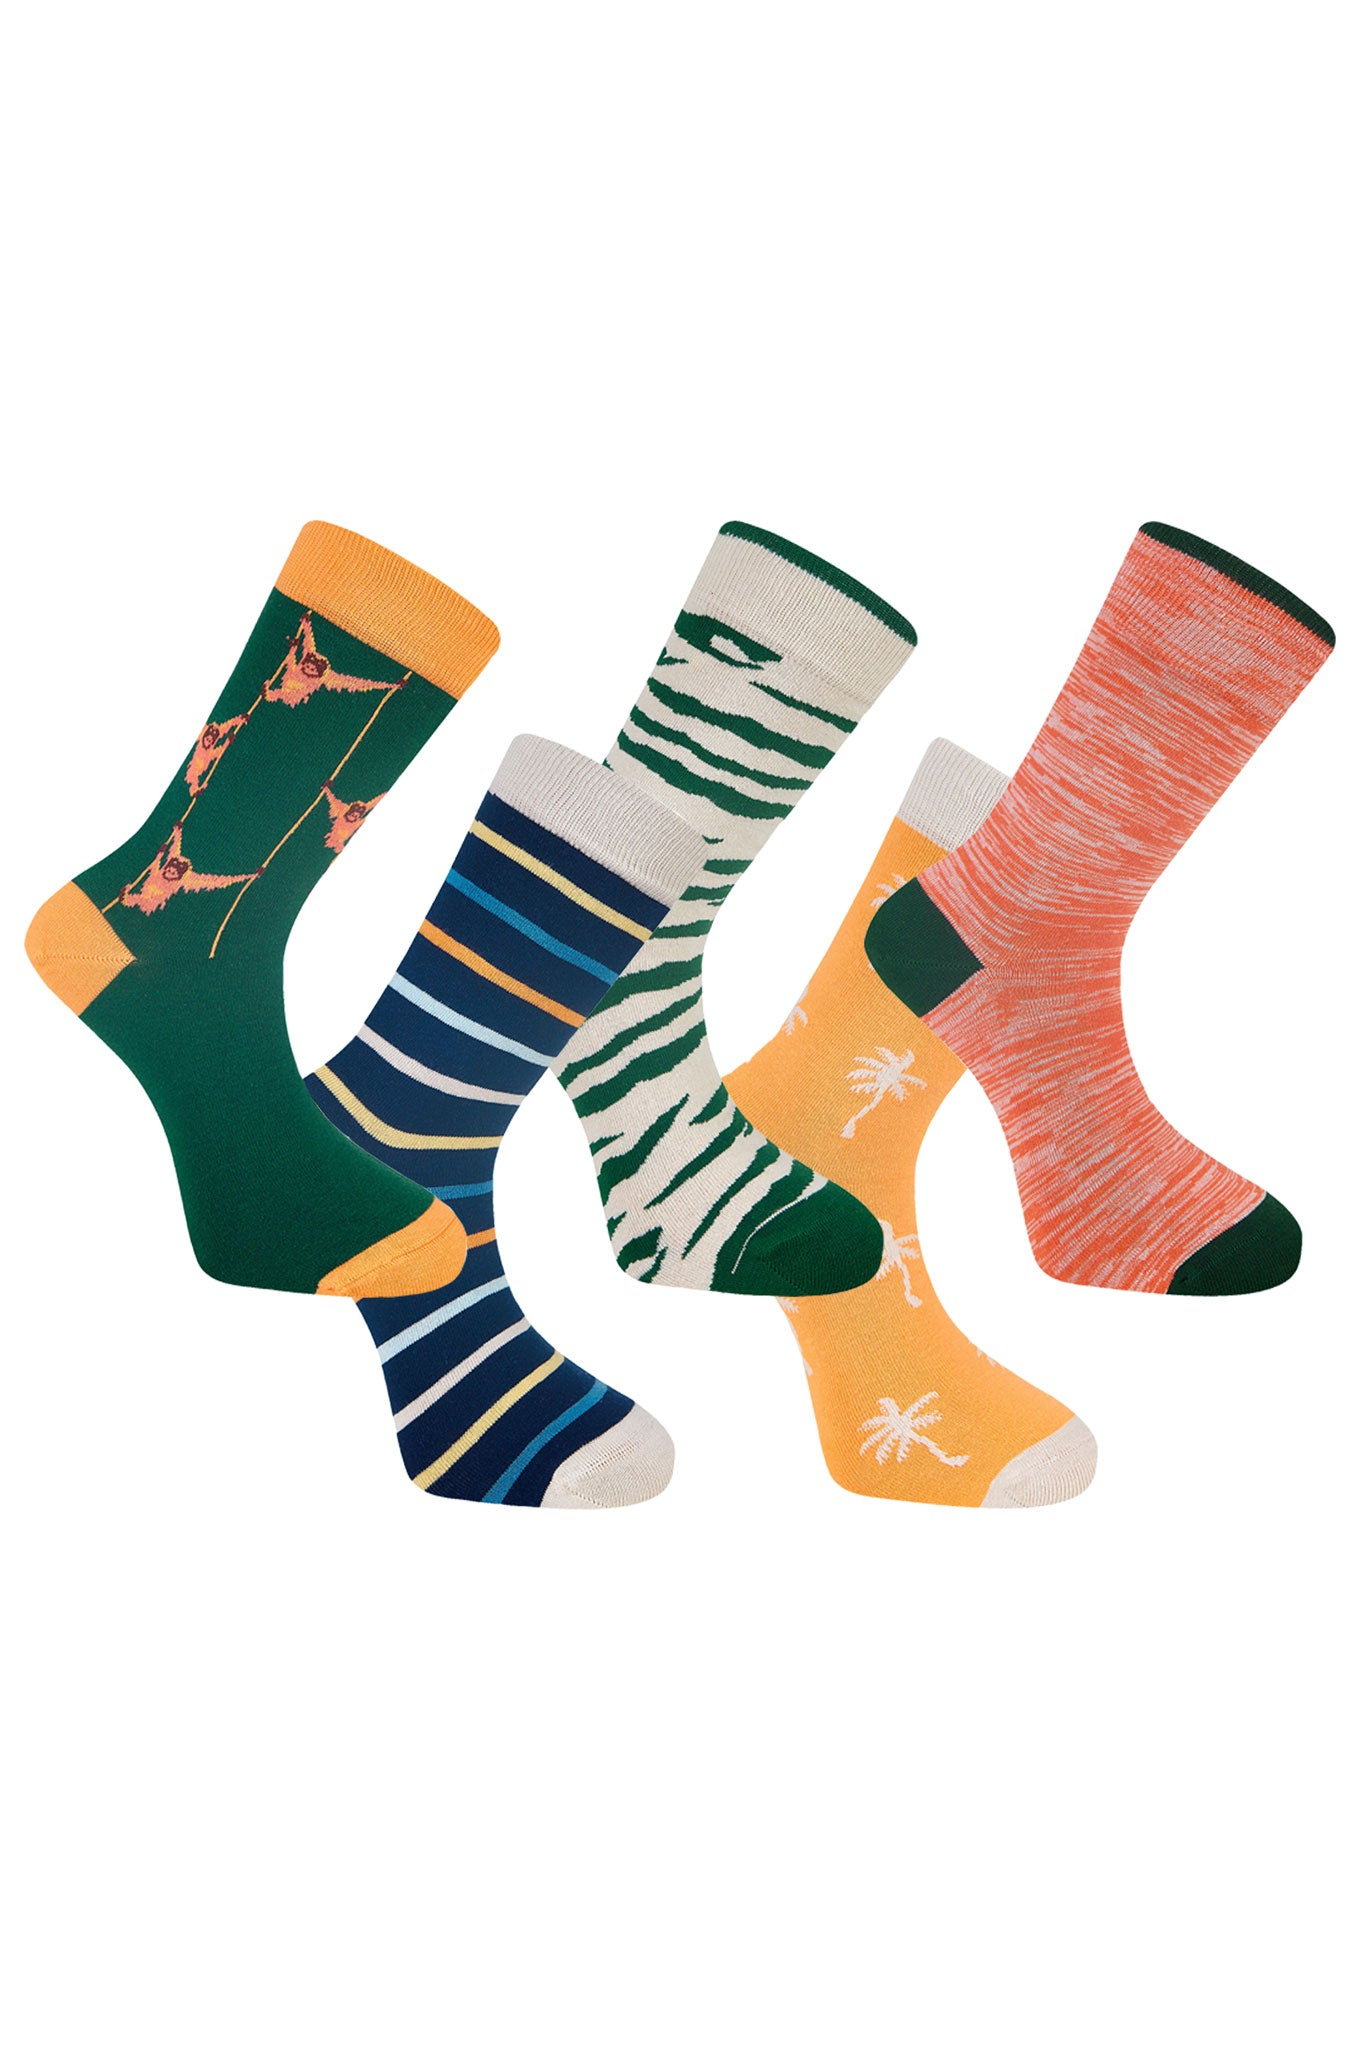 LUCKY DIP Sock Bundle (5 Pairs)